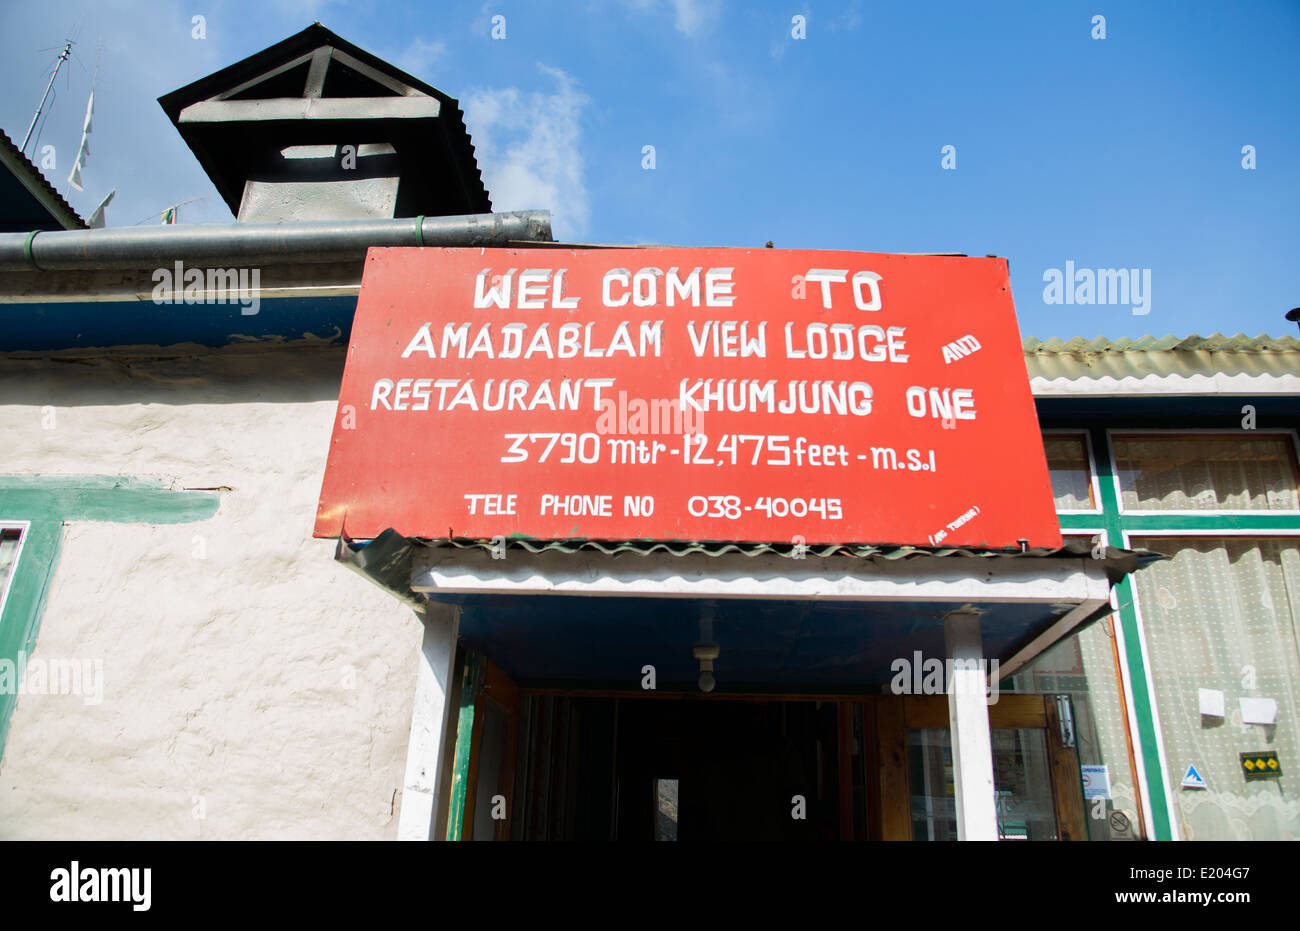 Nepal.Sign for a lodge in the village of Khumjung, Solukhumbu remote, Mt Everest, Himalayas - Stock Image